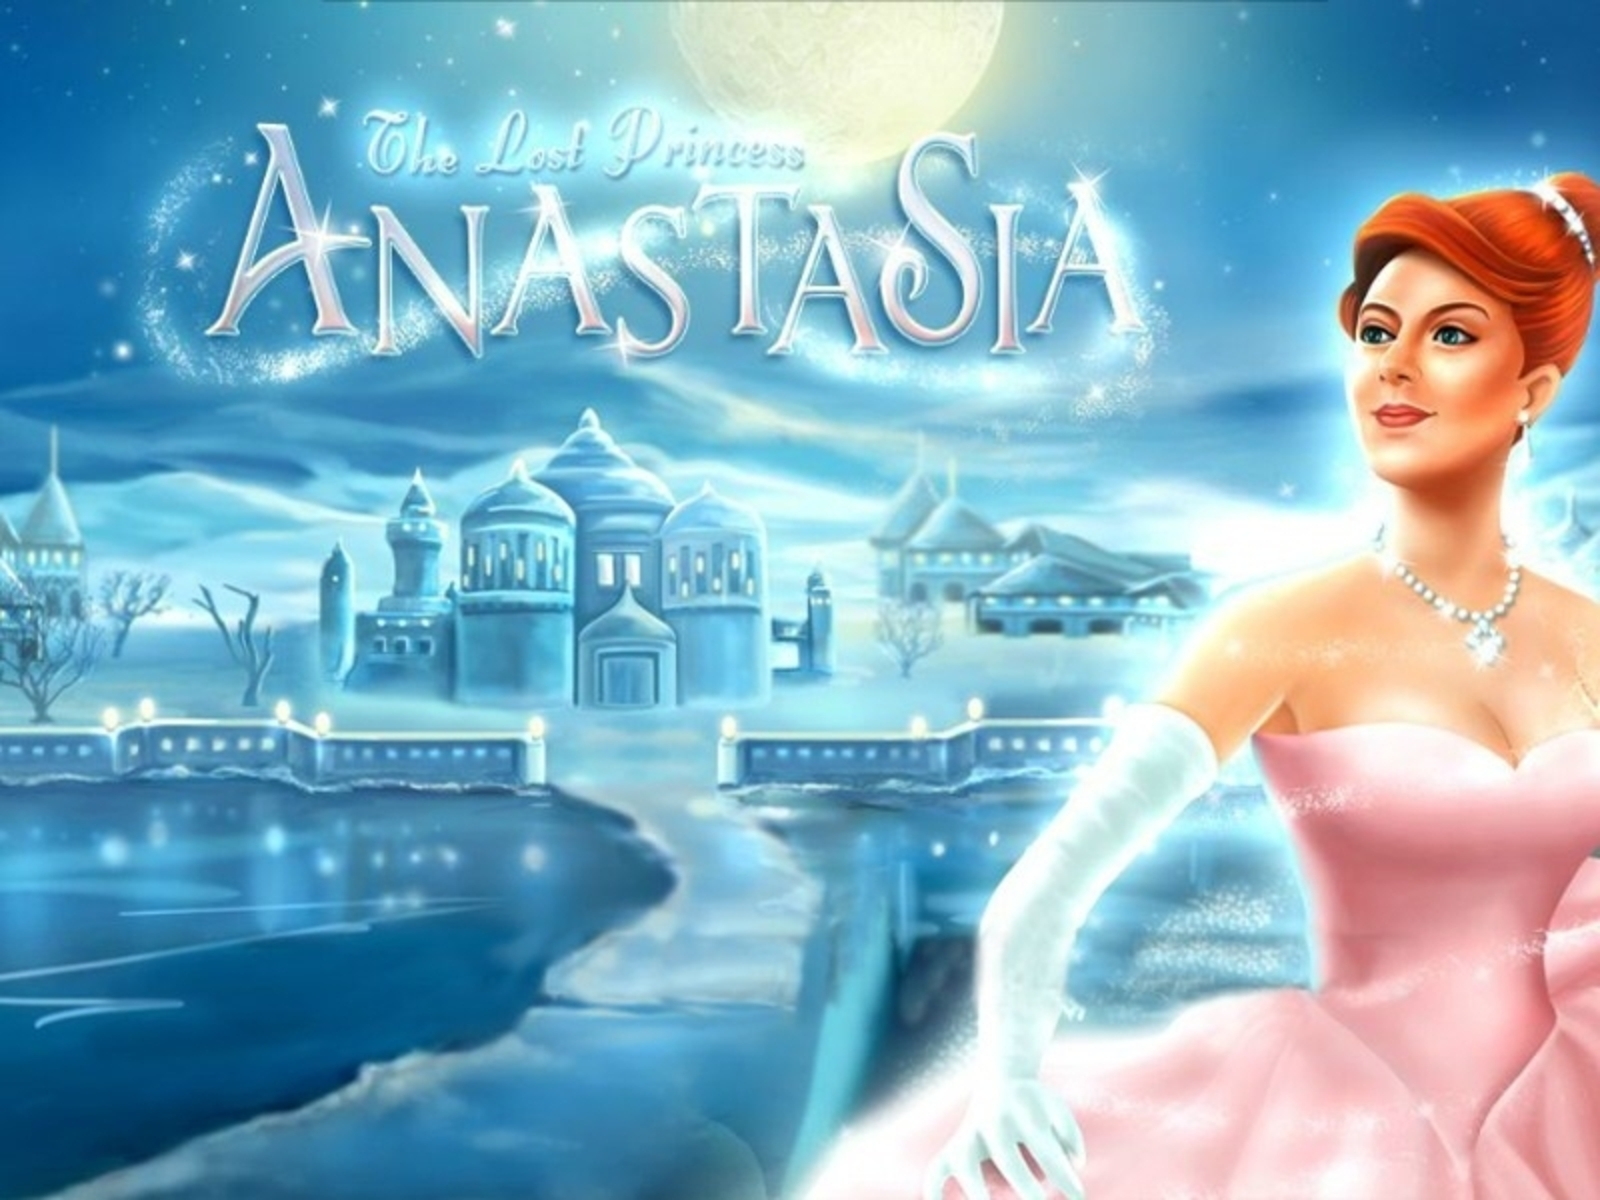 The The Lost Princess Anastasia Online Slot Demo Game by Microgaming